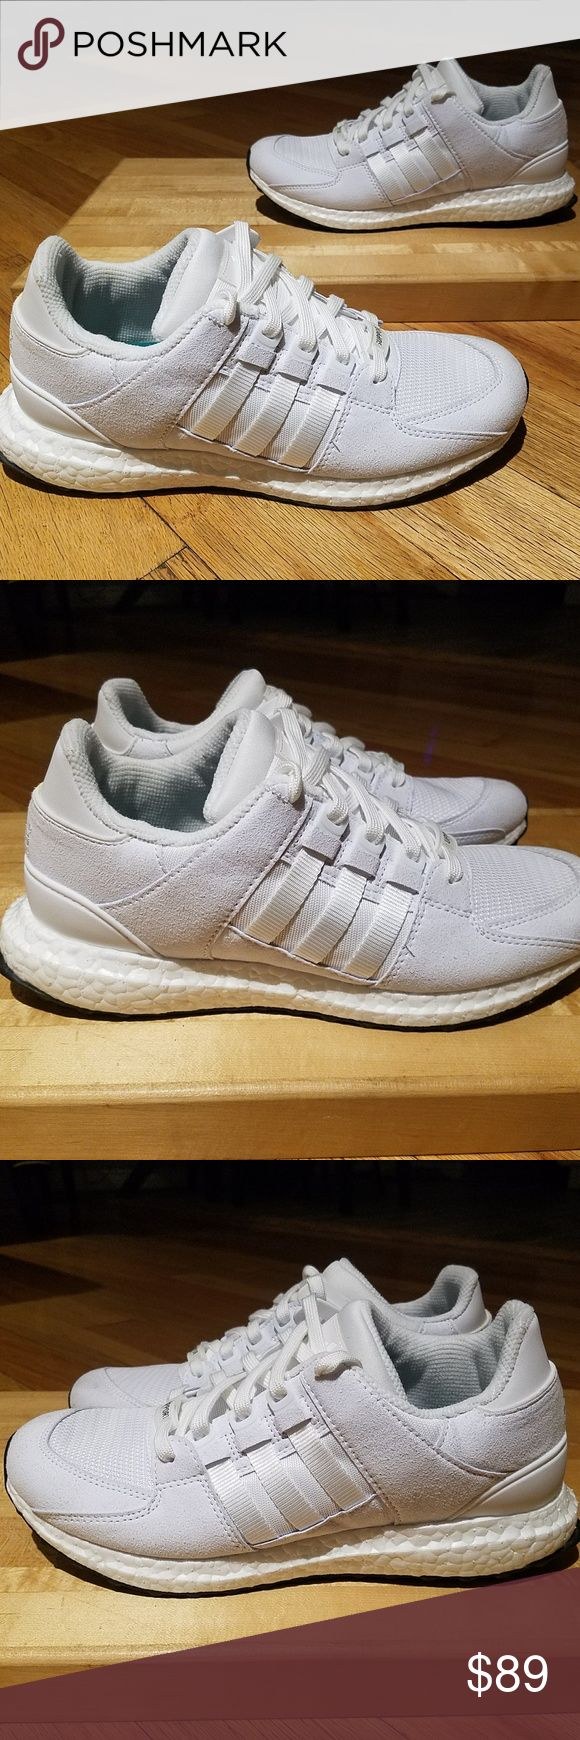 Adidas SUPPORT EQT 93/16 BOOST Shoes sz 8.5 - 0218 THE SHOES WERE A REUTRN. No Box, Few Signs of being tried on and moved around. Otherwise, New Condition, Clean Shoe.   Adidas SUPPORT EQT 93/16 BOOST Running Shoes, White White Silver  Mens Size 8.5   Please inspect all pics!   Thank you! adidas Shoes Athletic Shoes